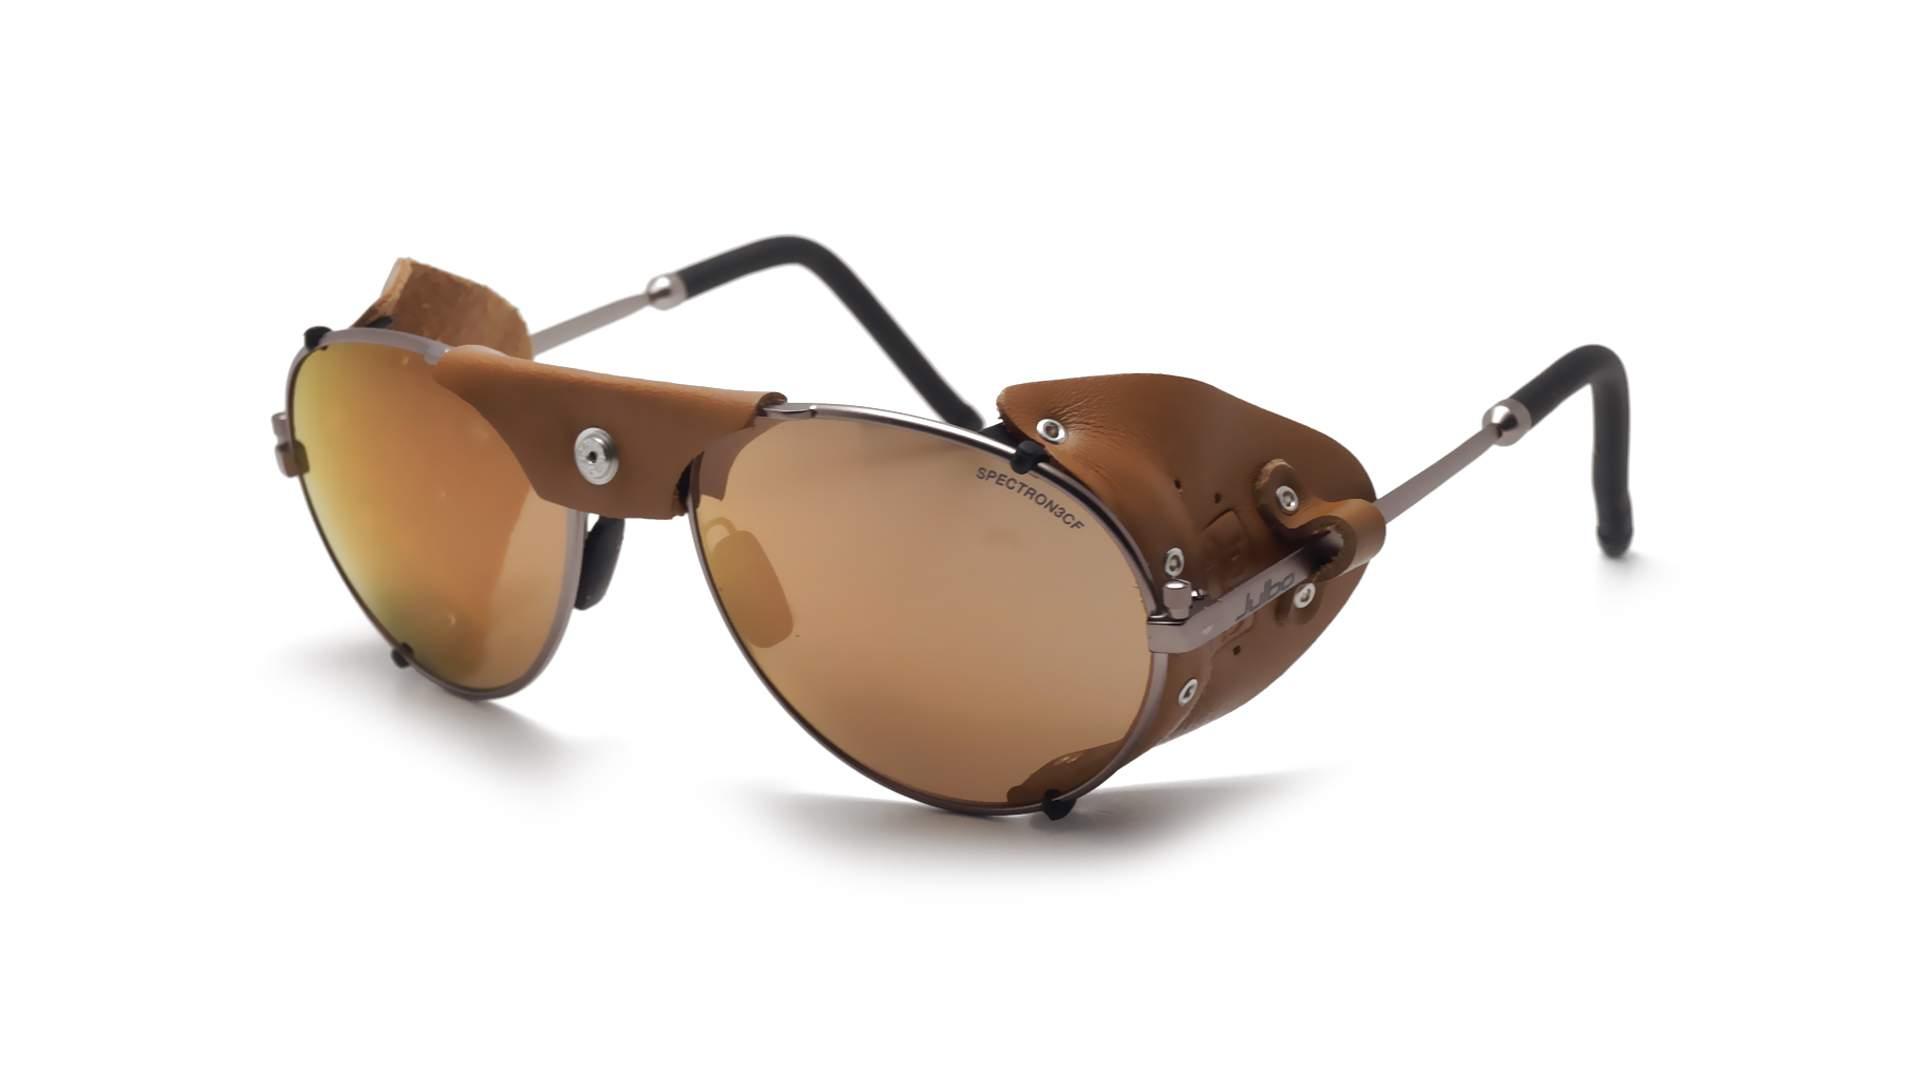 ccf45ac5b9 Sunglasses Julbo Cham Laiton Mountain heritage Brown Matte J020 1150 brown  leather shell 58-19 Large Mirror